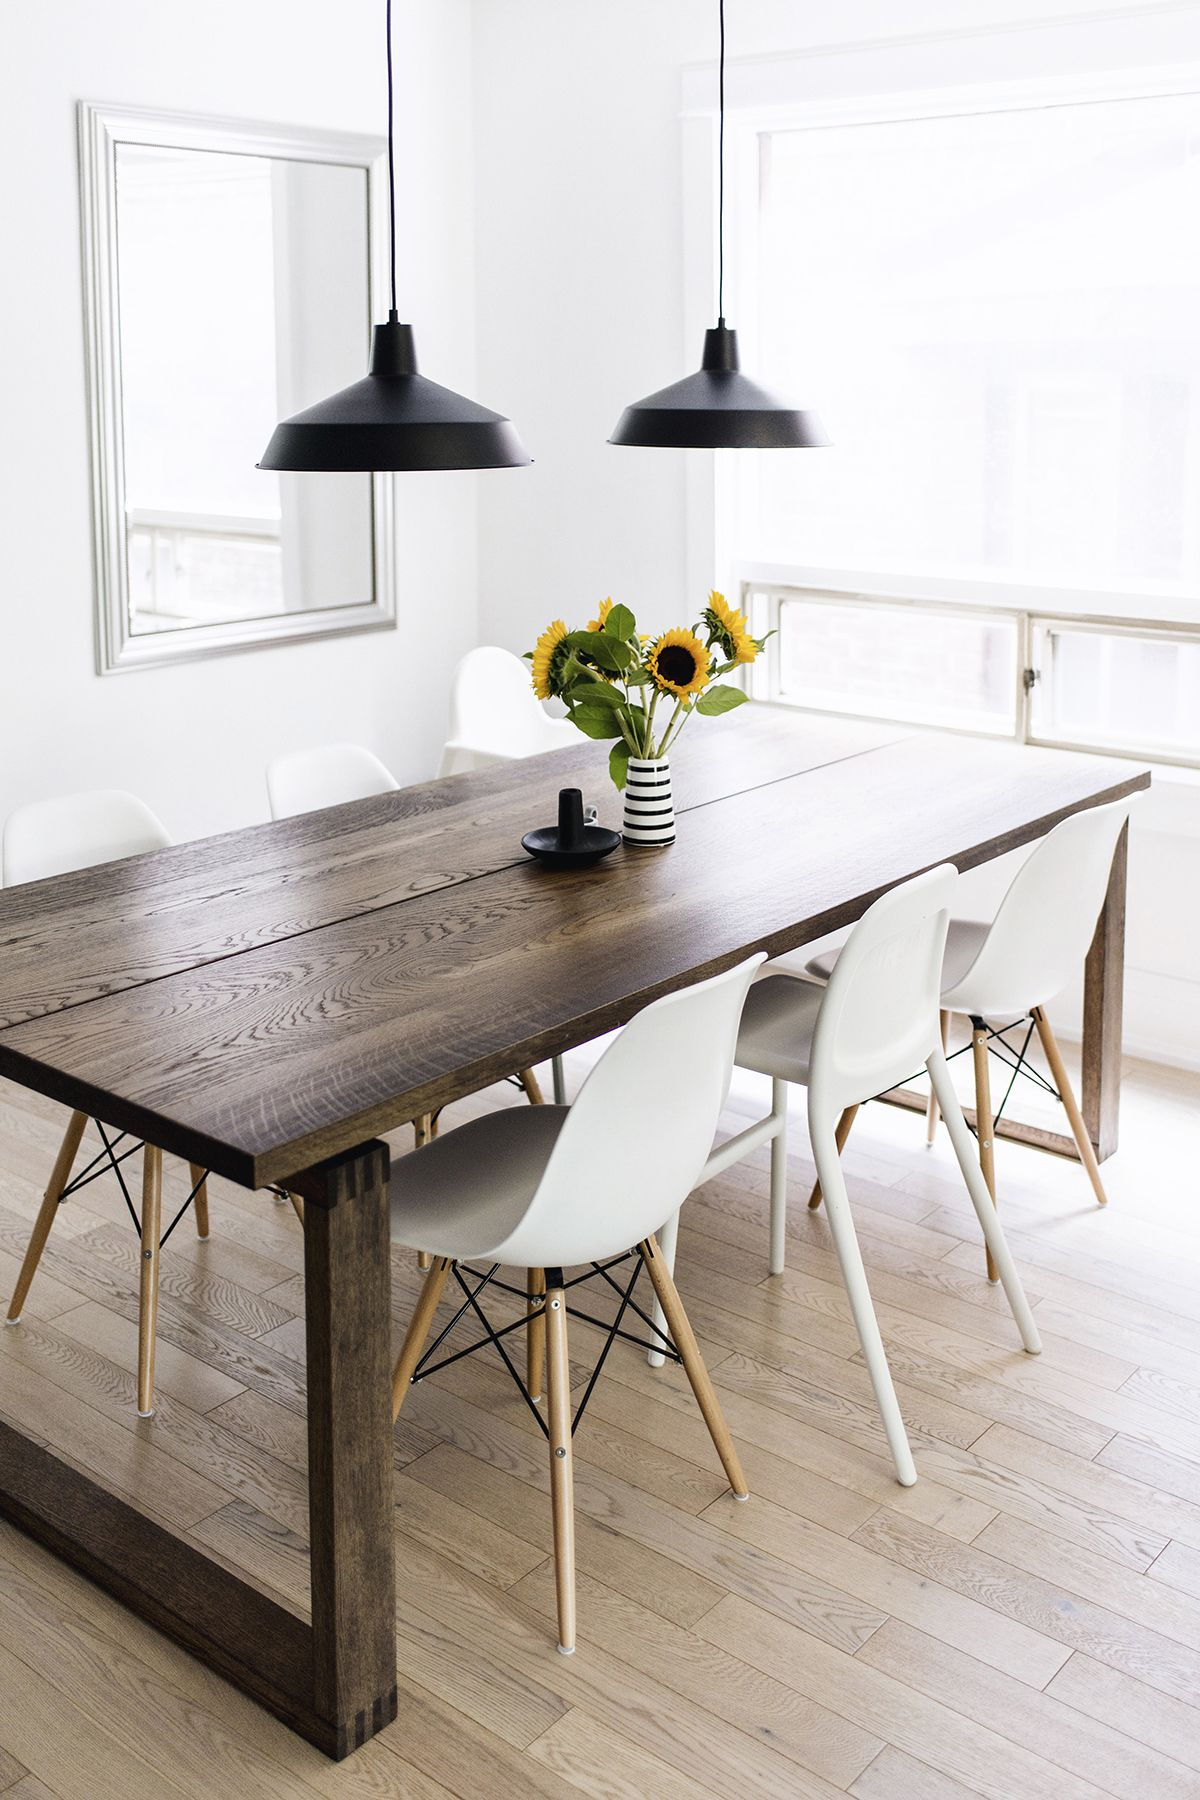 Scandinavian Inspired Dining Room Morbylanga Table Eames Chairs Black Wareh Scandinavian Dining Room Scandinavian Dining Table Dining Room Furniture Design